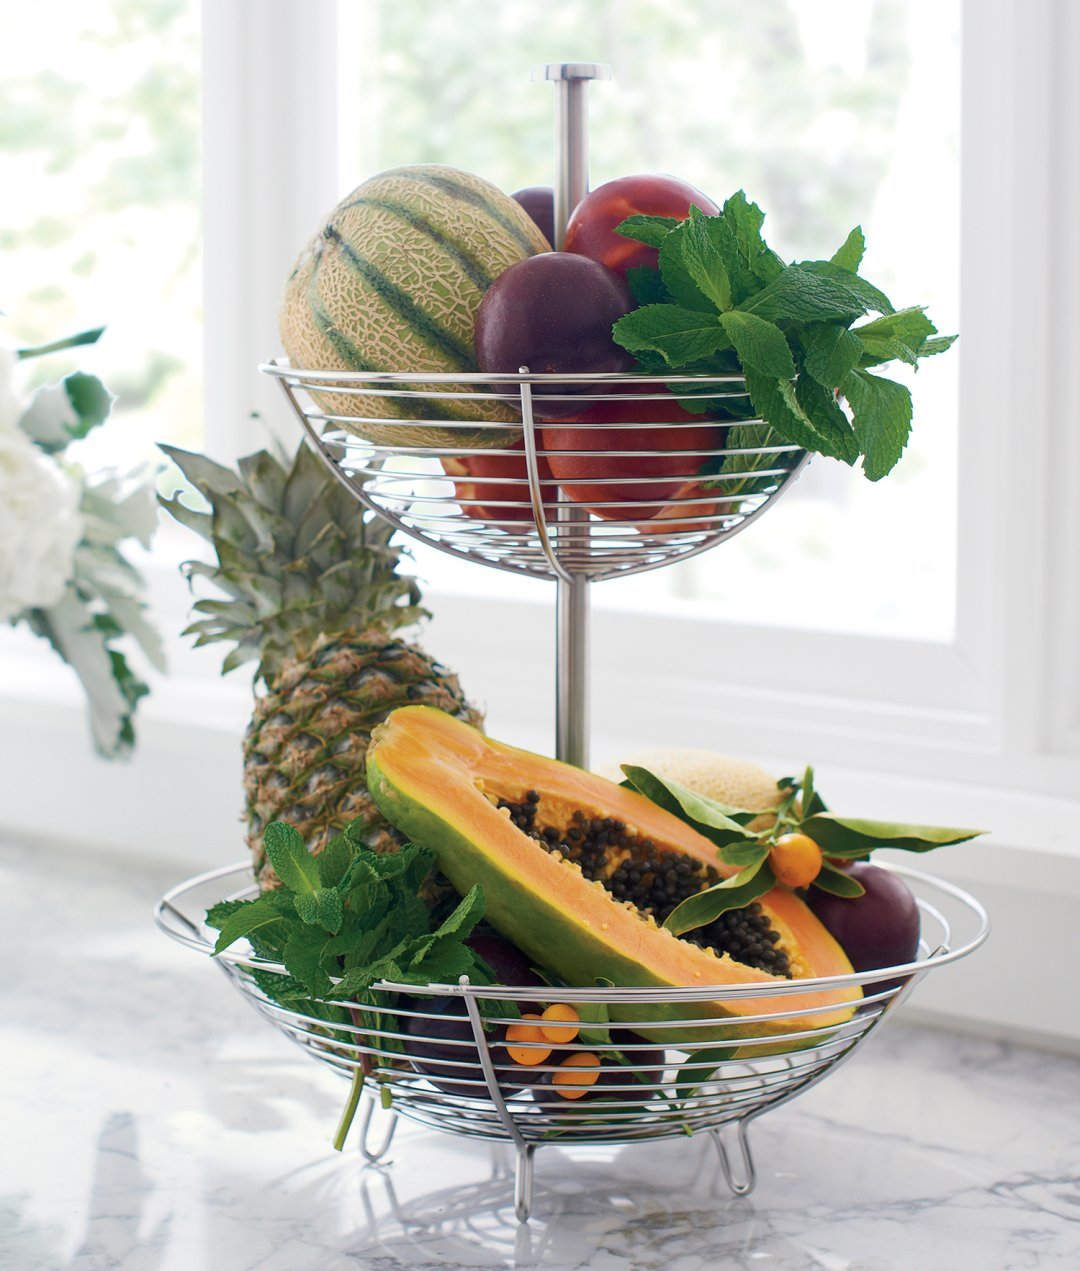 Two-tier fruit basket with tropical fruits